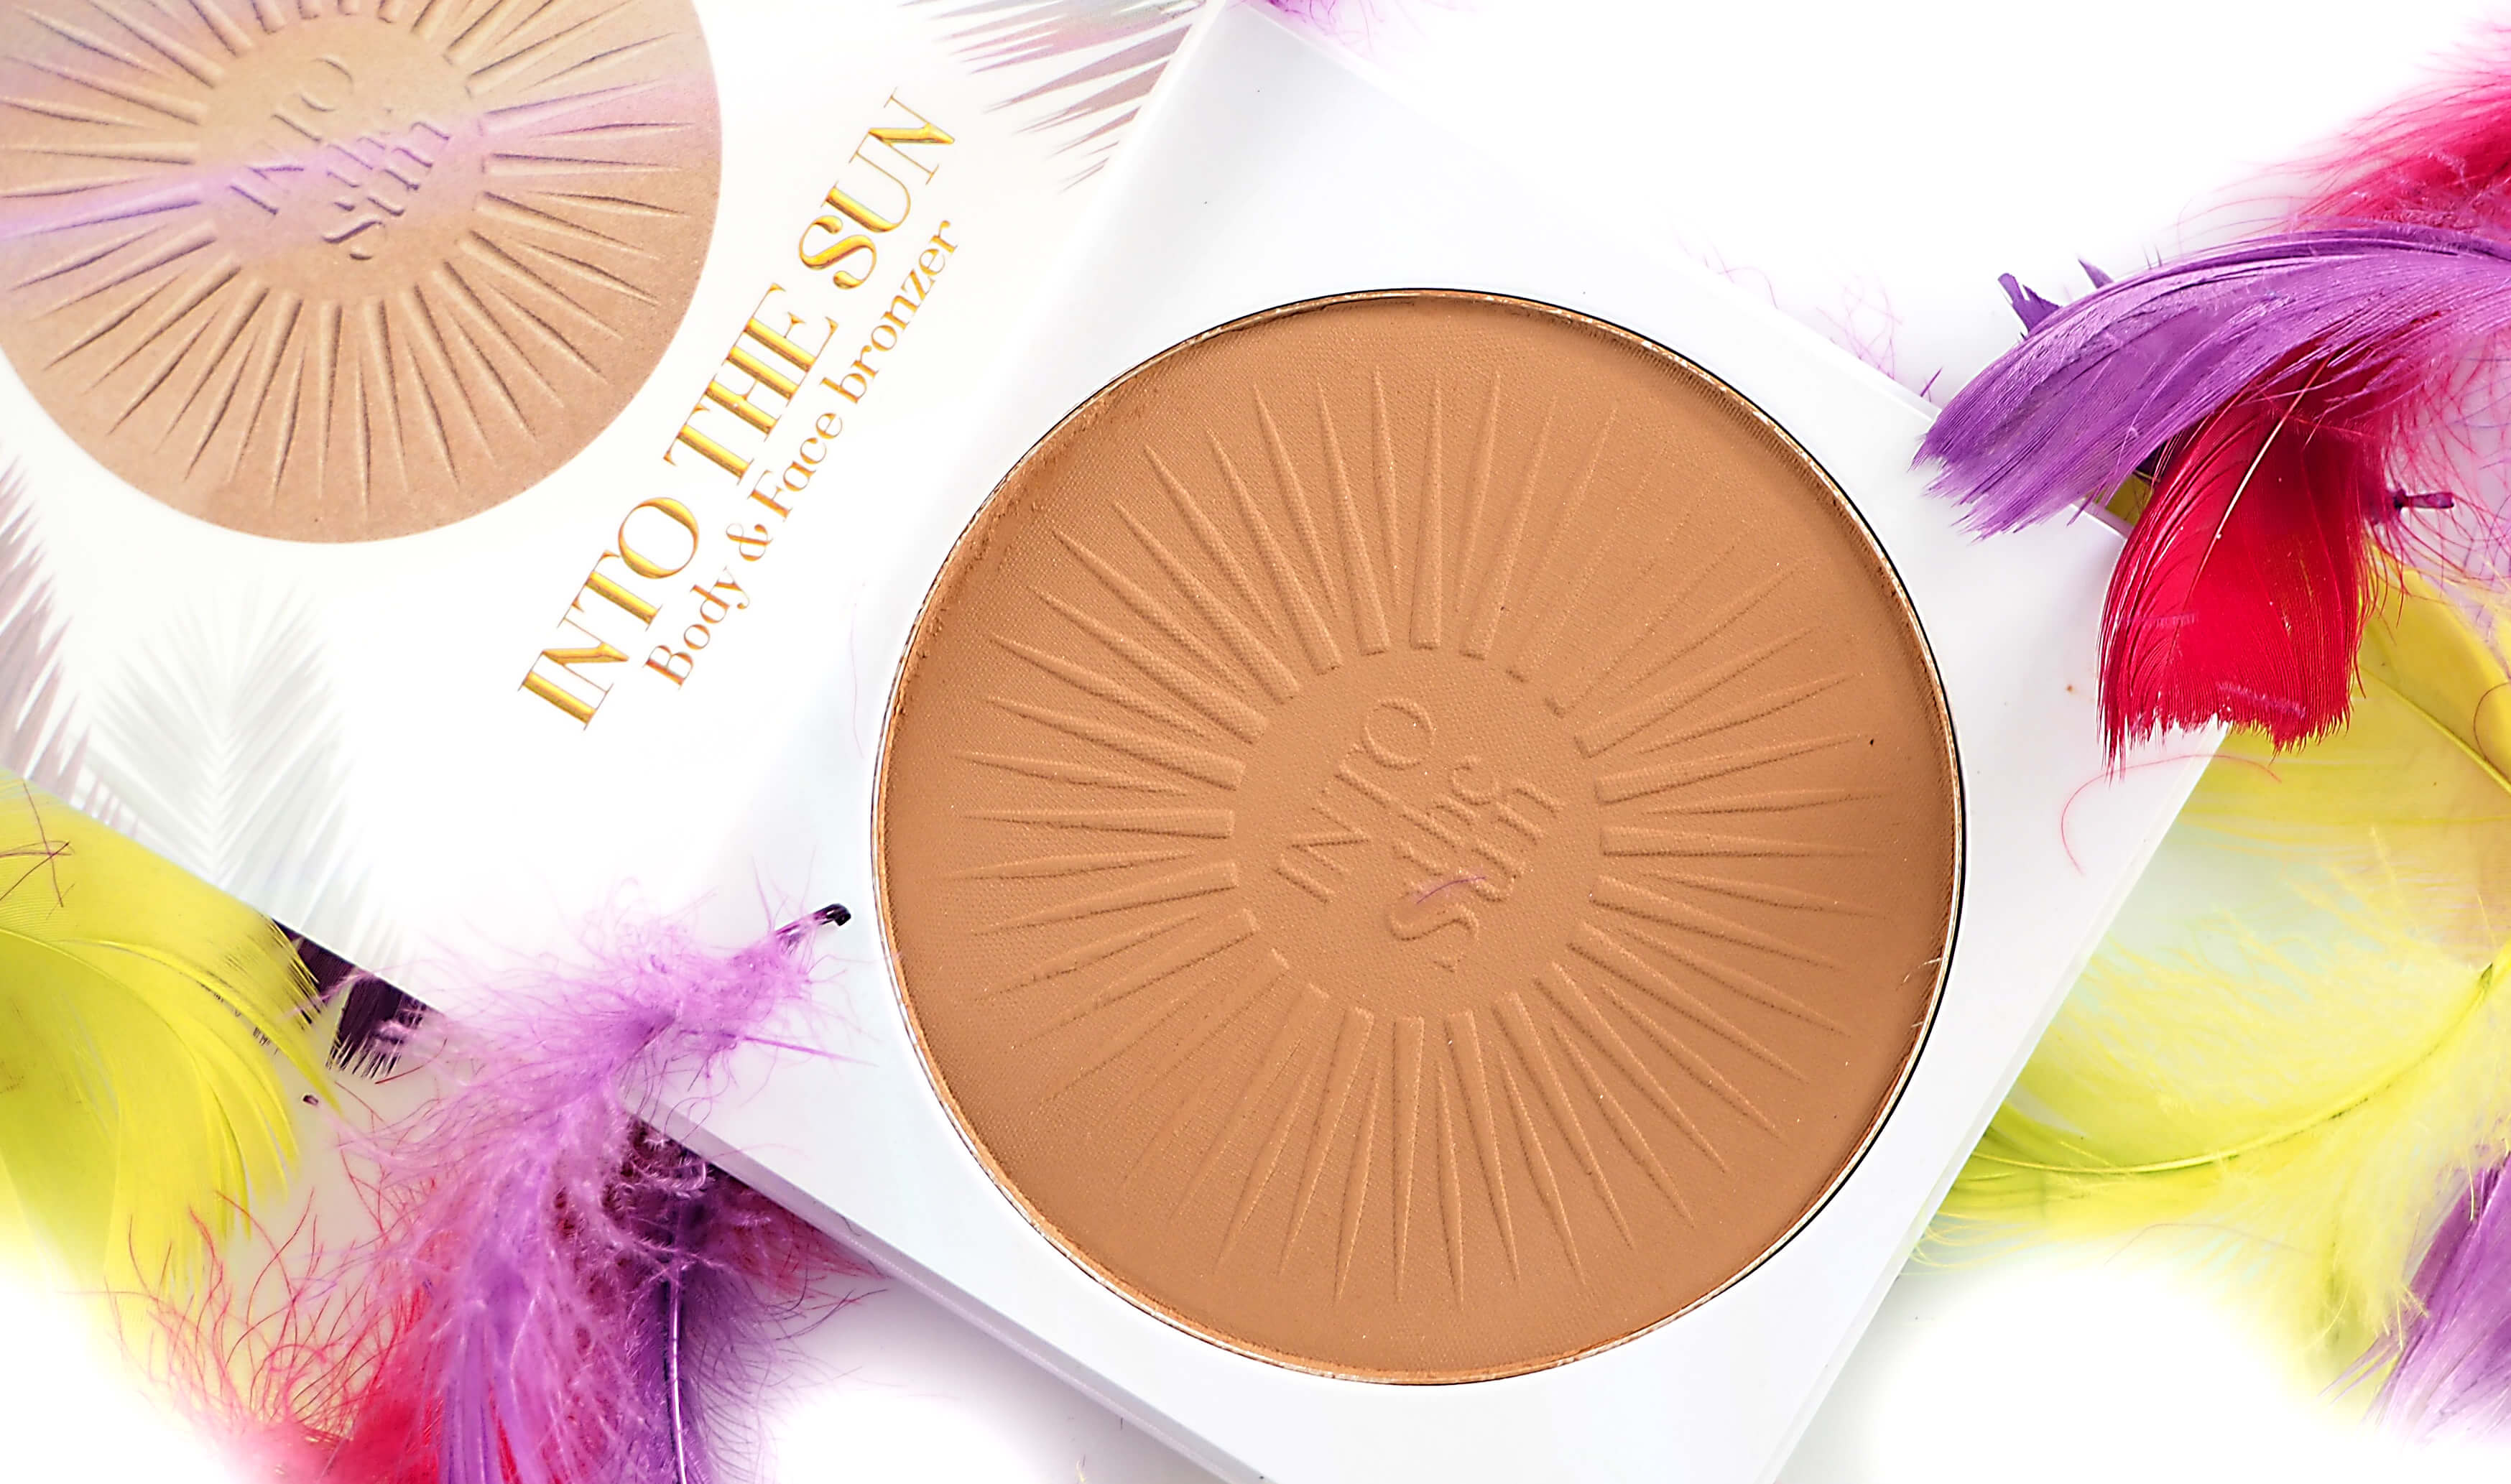 Recenzja WIBO INTO THE SUN Body&Face Bronzer